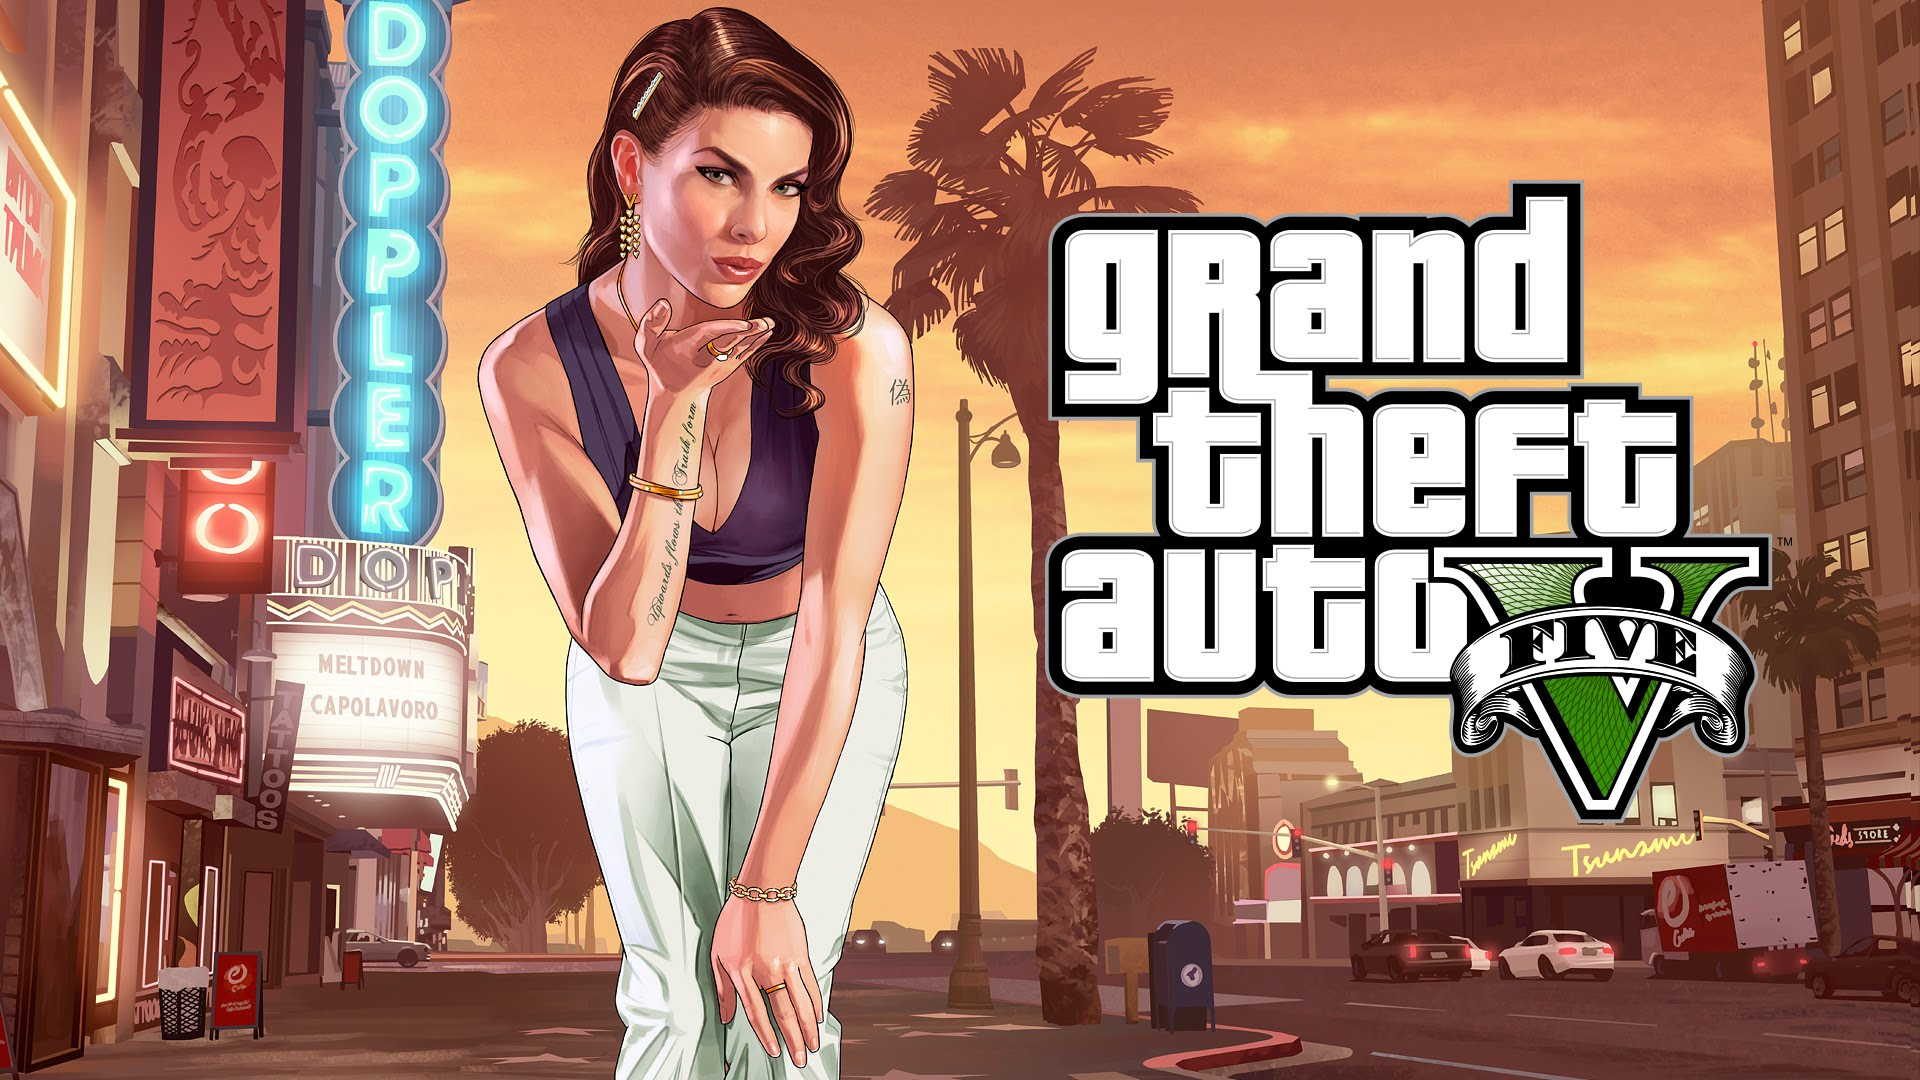 GRAND THEFT AUTO V 5 ( RU CIS / Steam GIFT ) + ПОДАРКИ